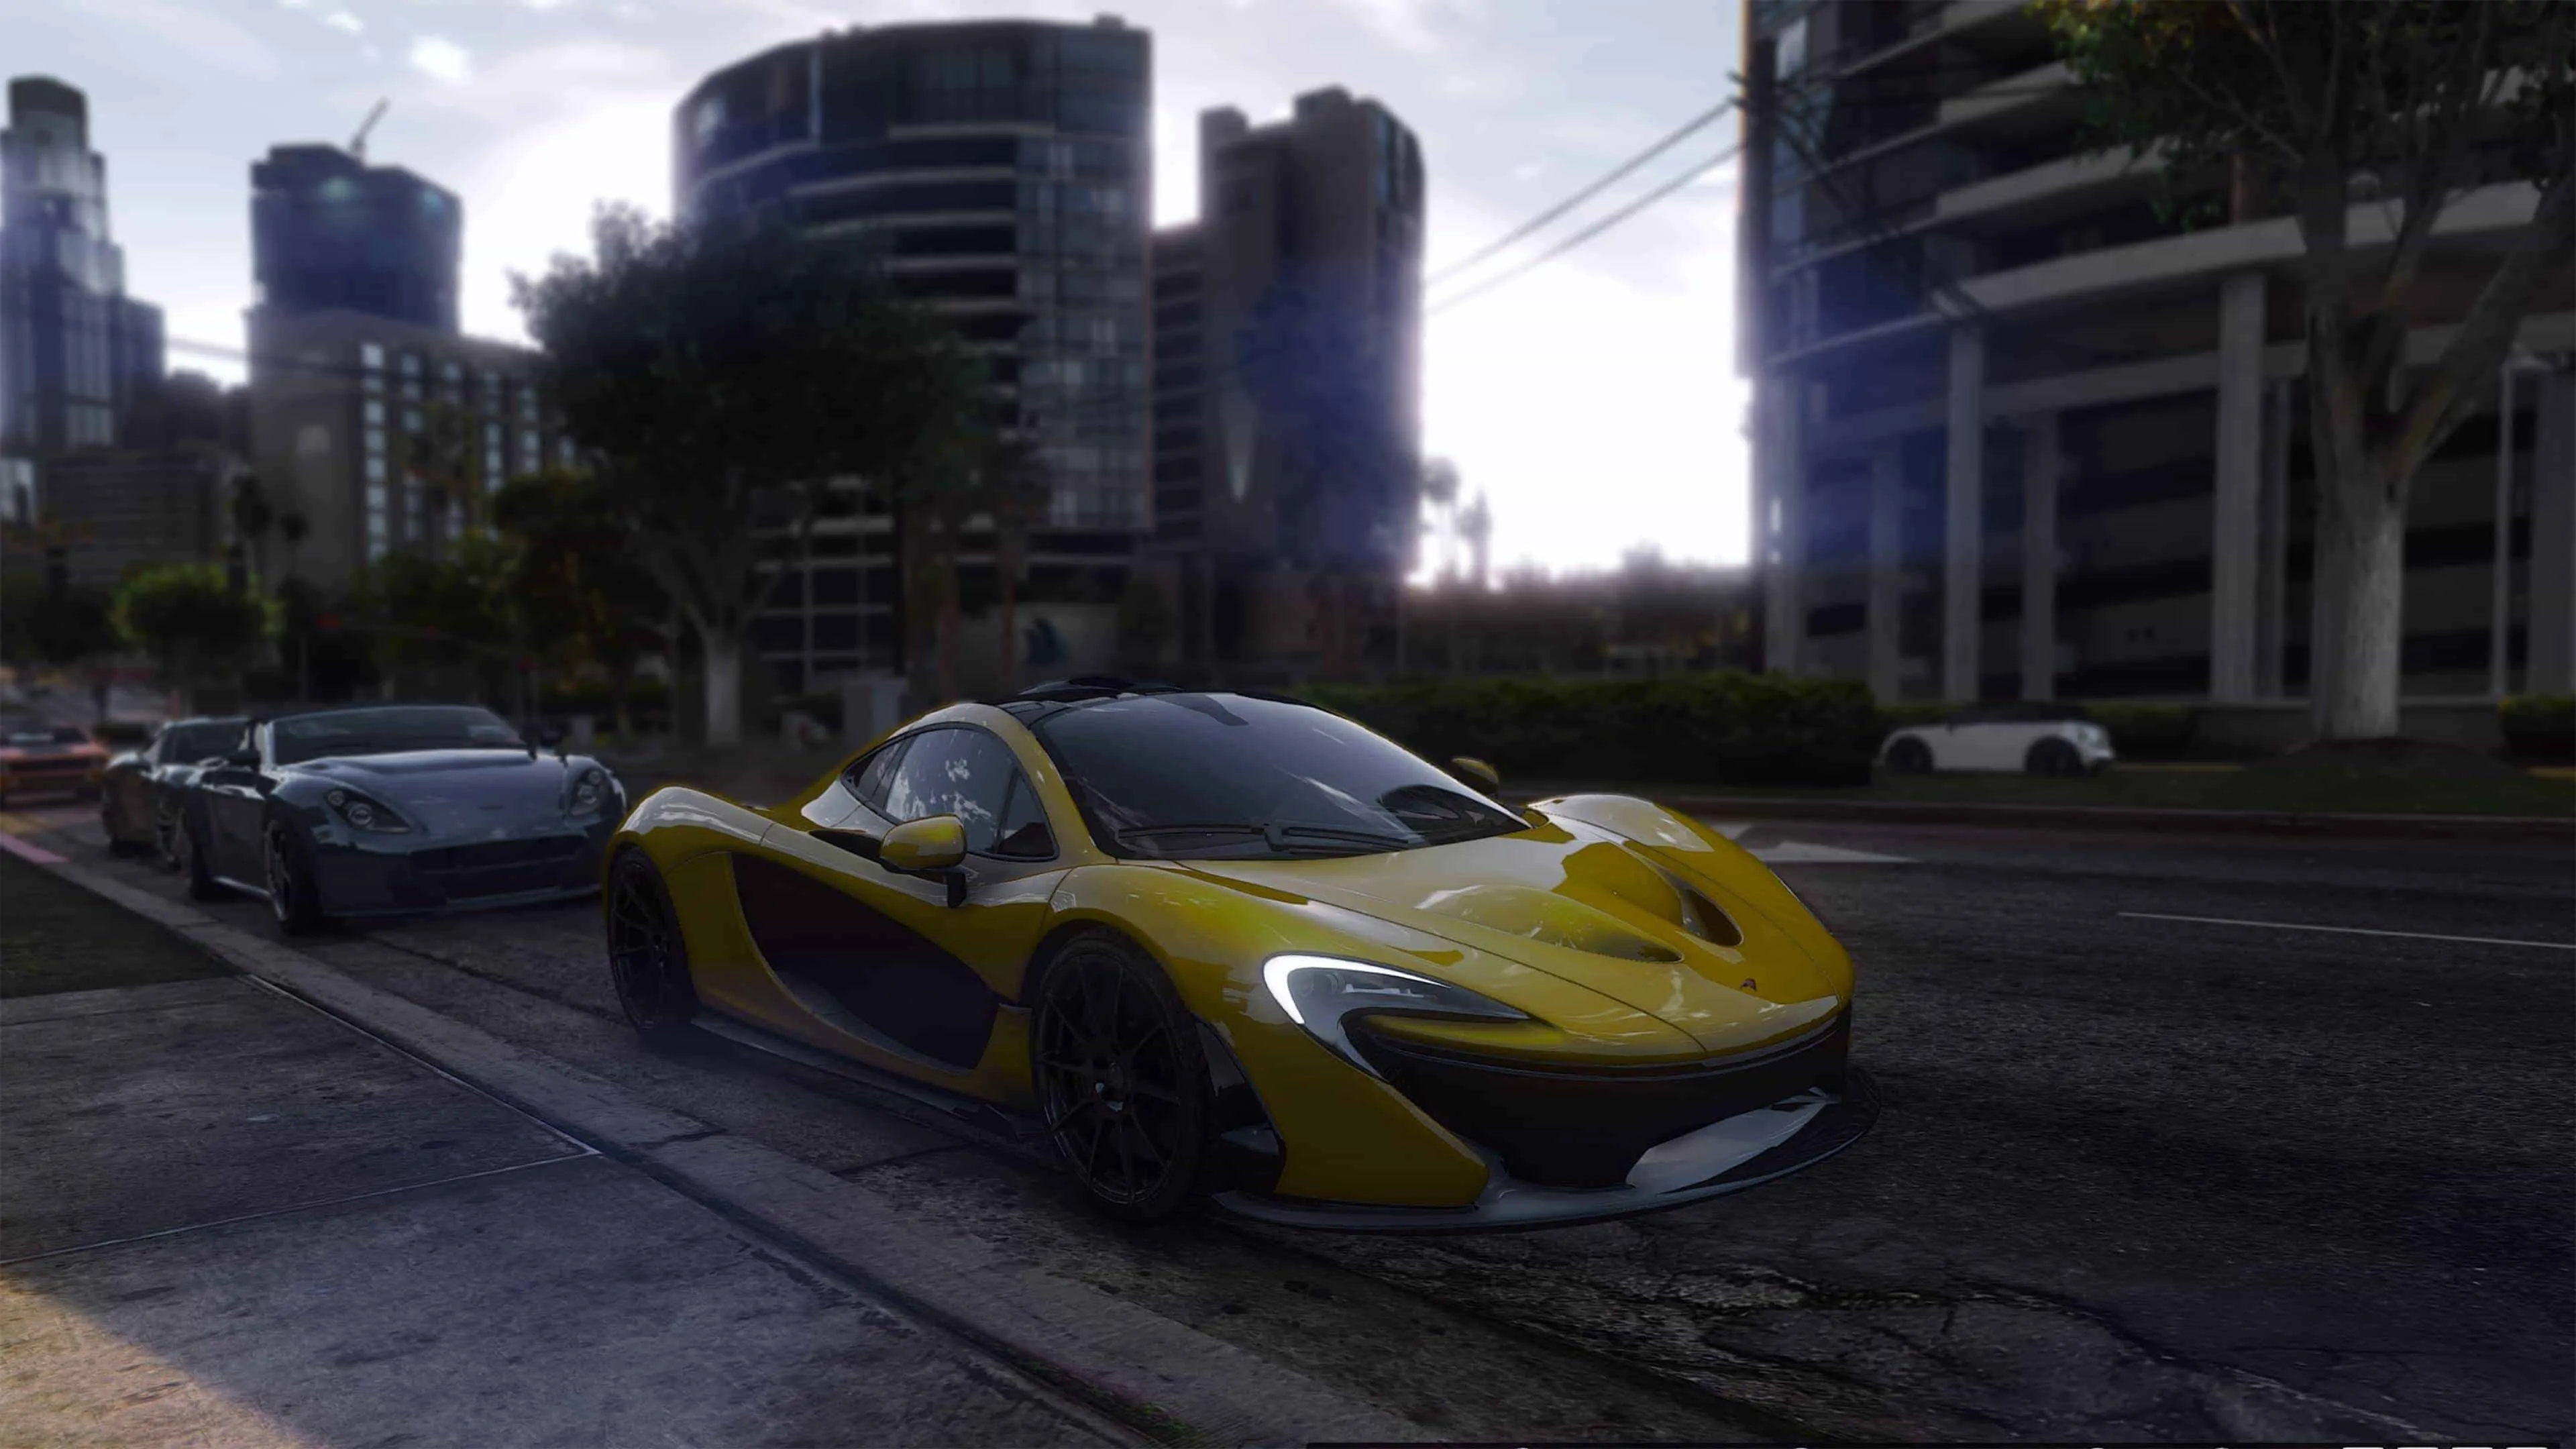 GTA V ENBSeries Mod Is One Way To Impress Your Friends - GTA